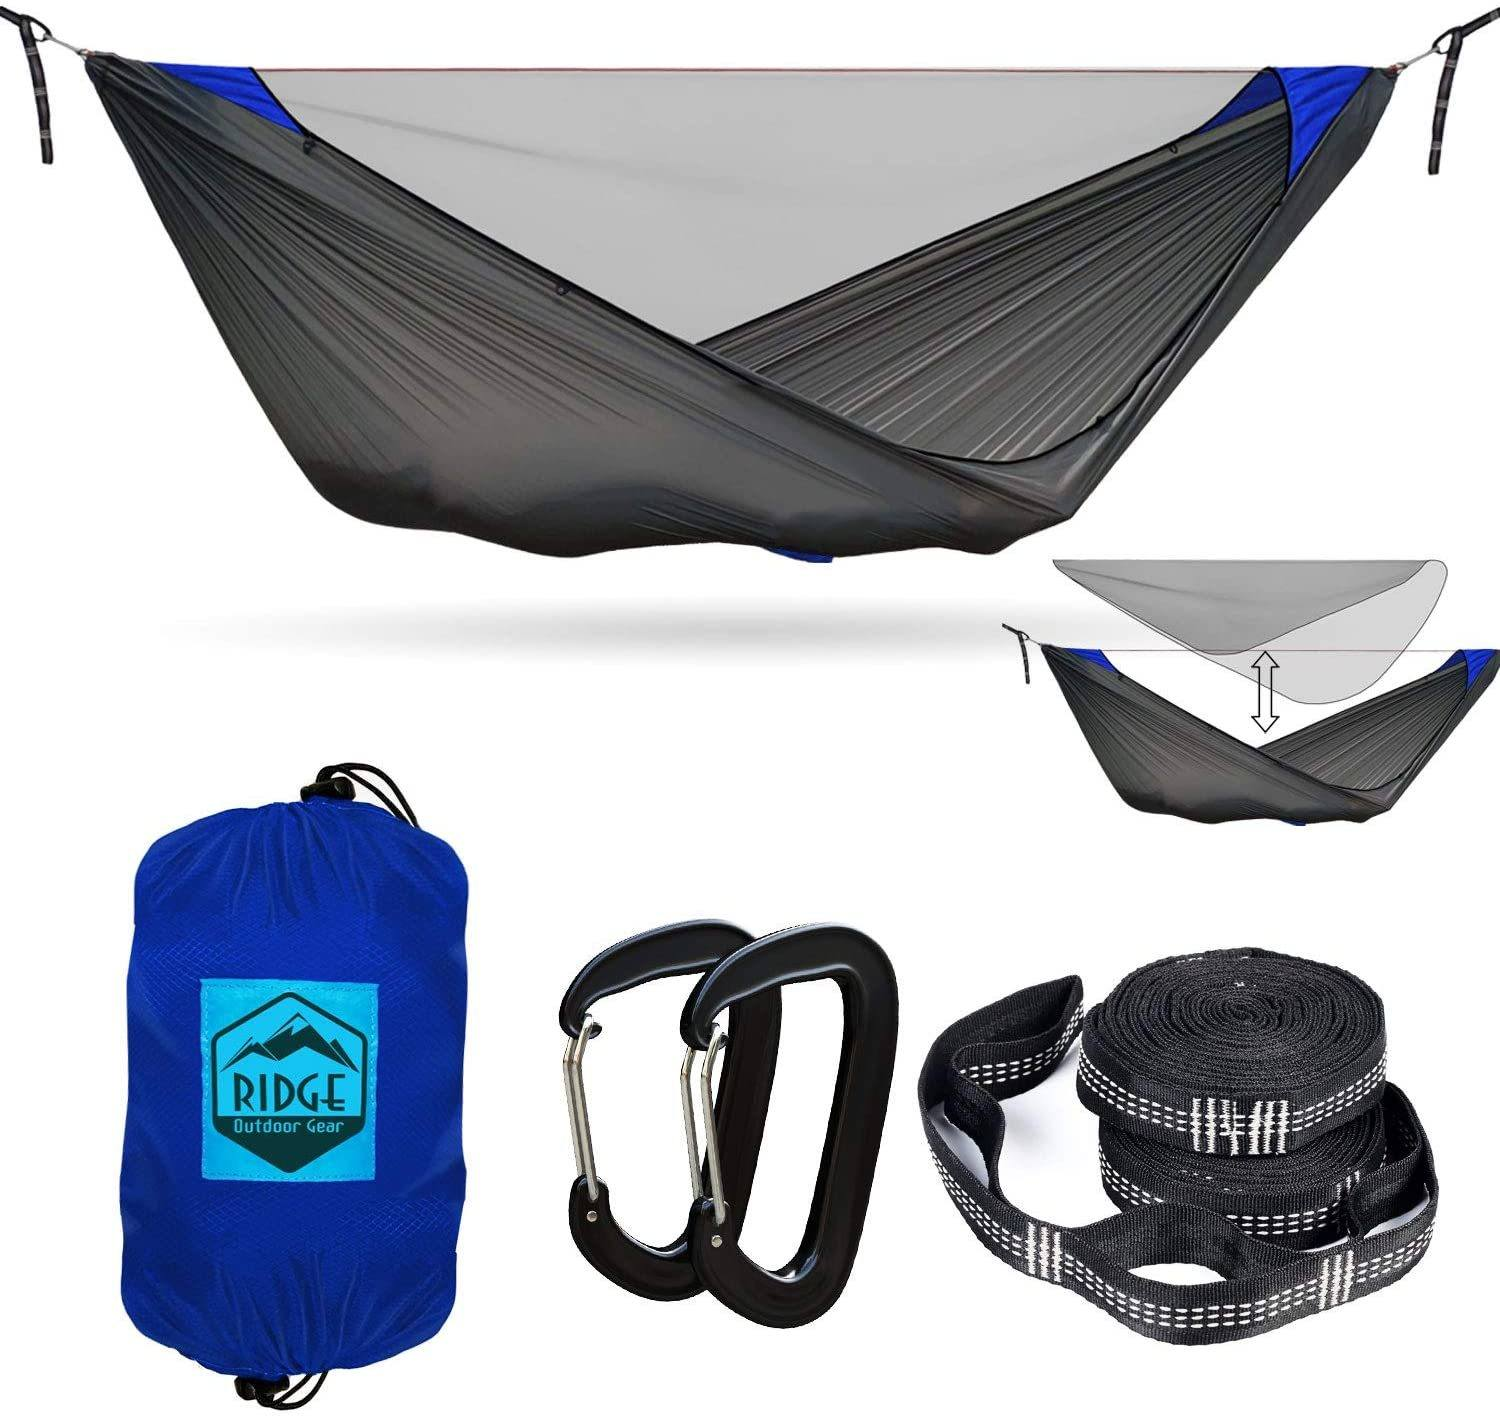 Ridge Outdoor Gear Lay-Flat Pinnacles Camping Hammock